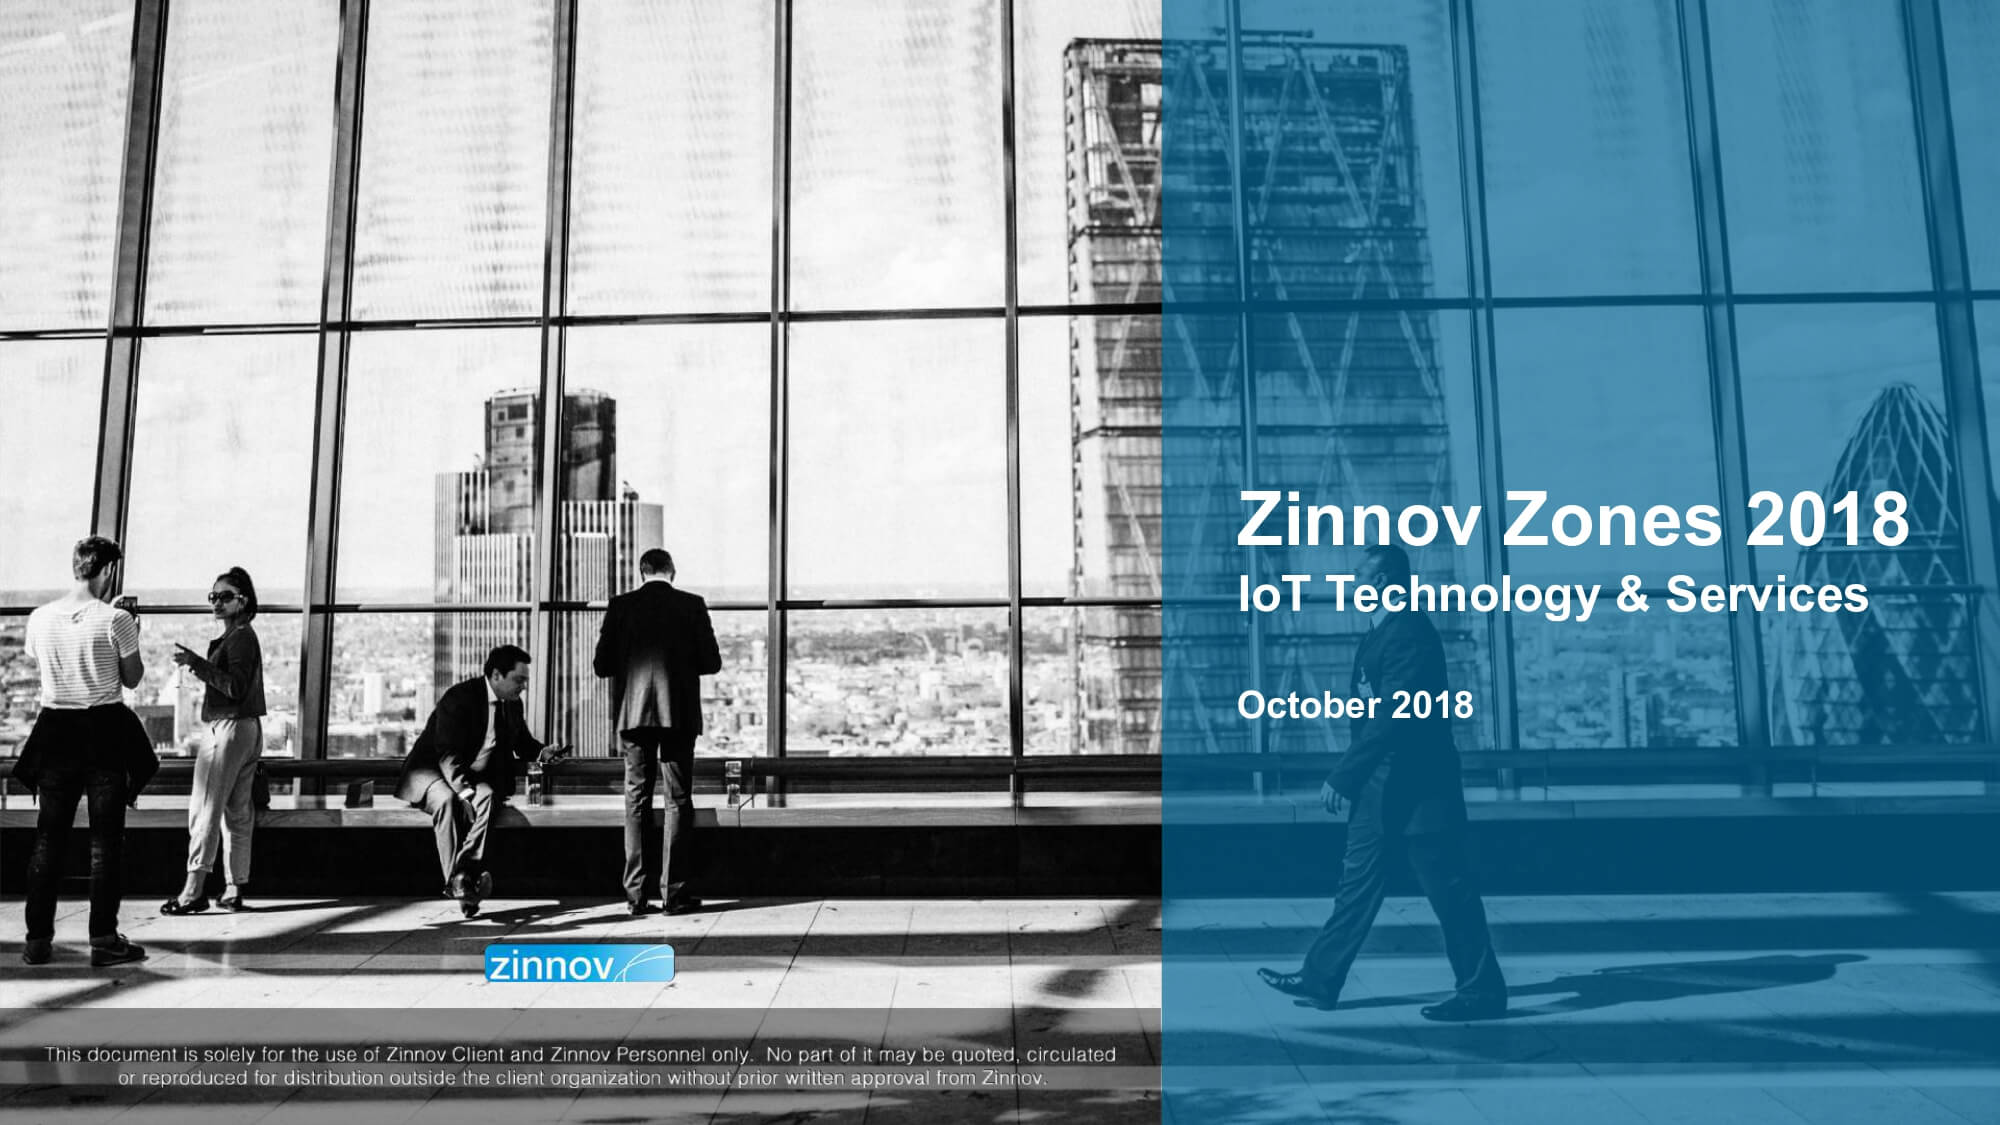 Zinnov Zones 2018 for IoT Technology Services